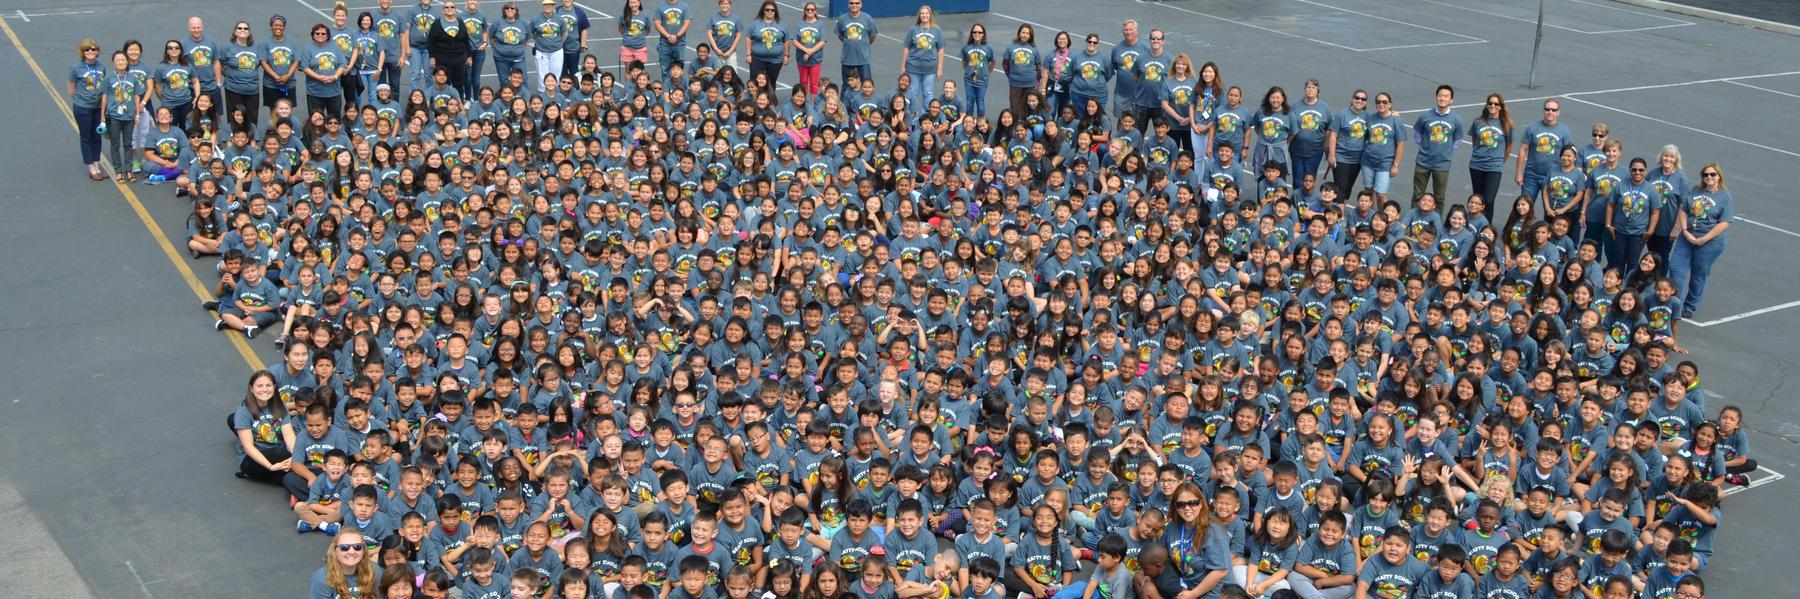 Students and staff gather together on the playground for an aerial view photo opportunity in their 2017-18 reading t-shirts.